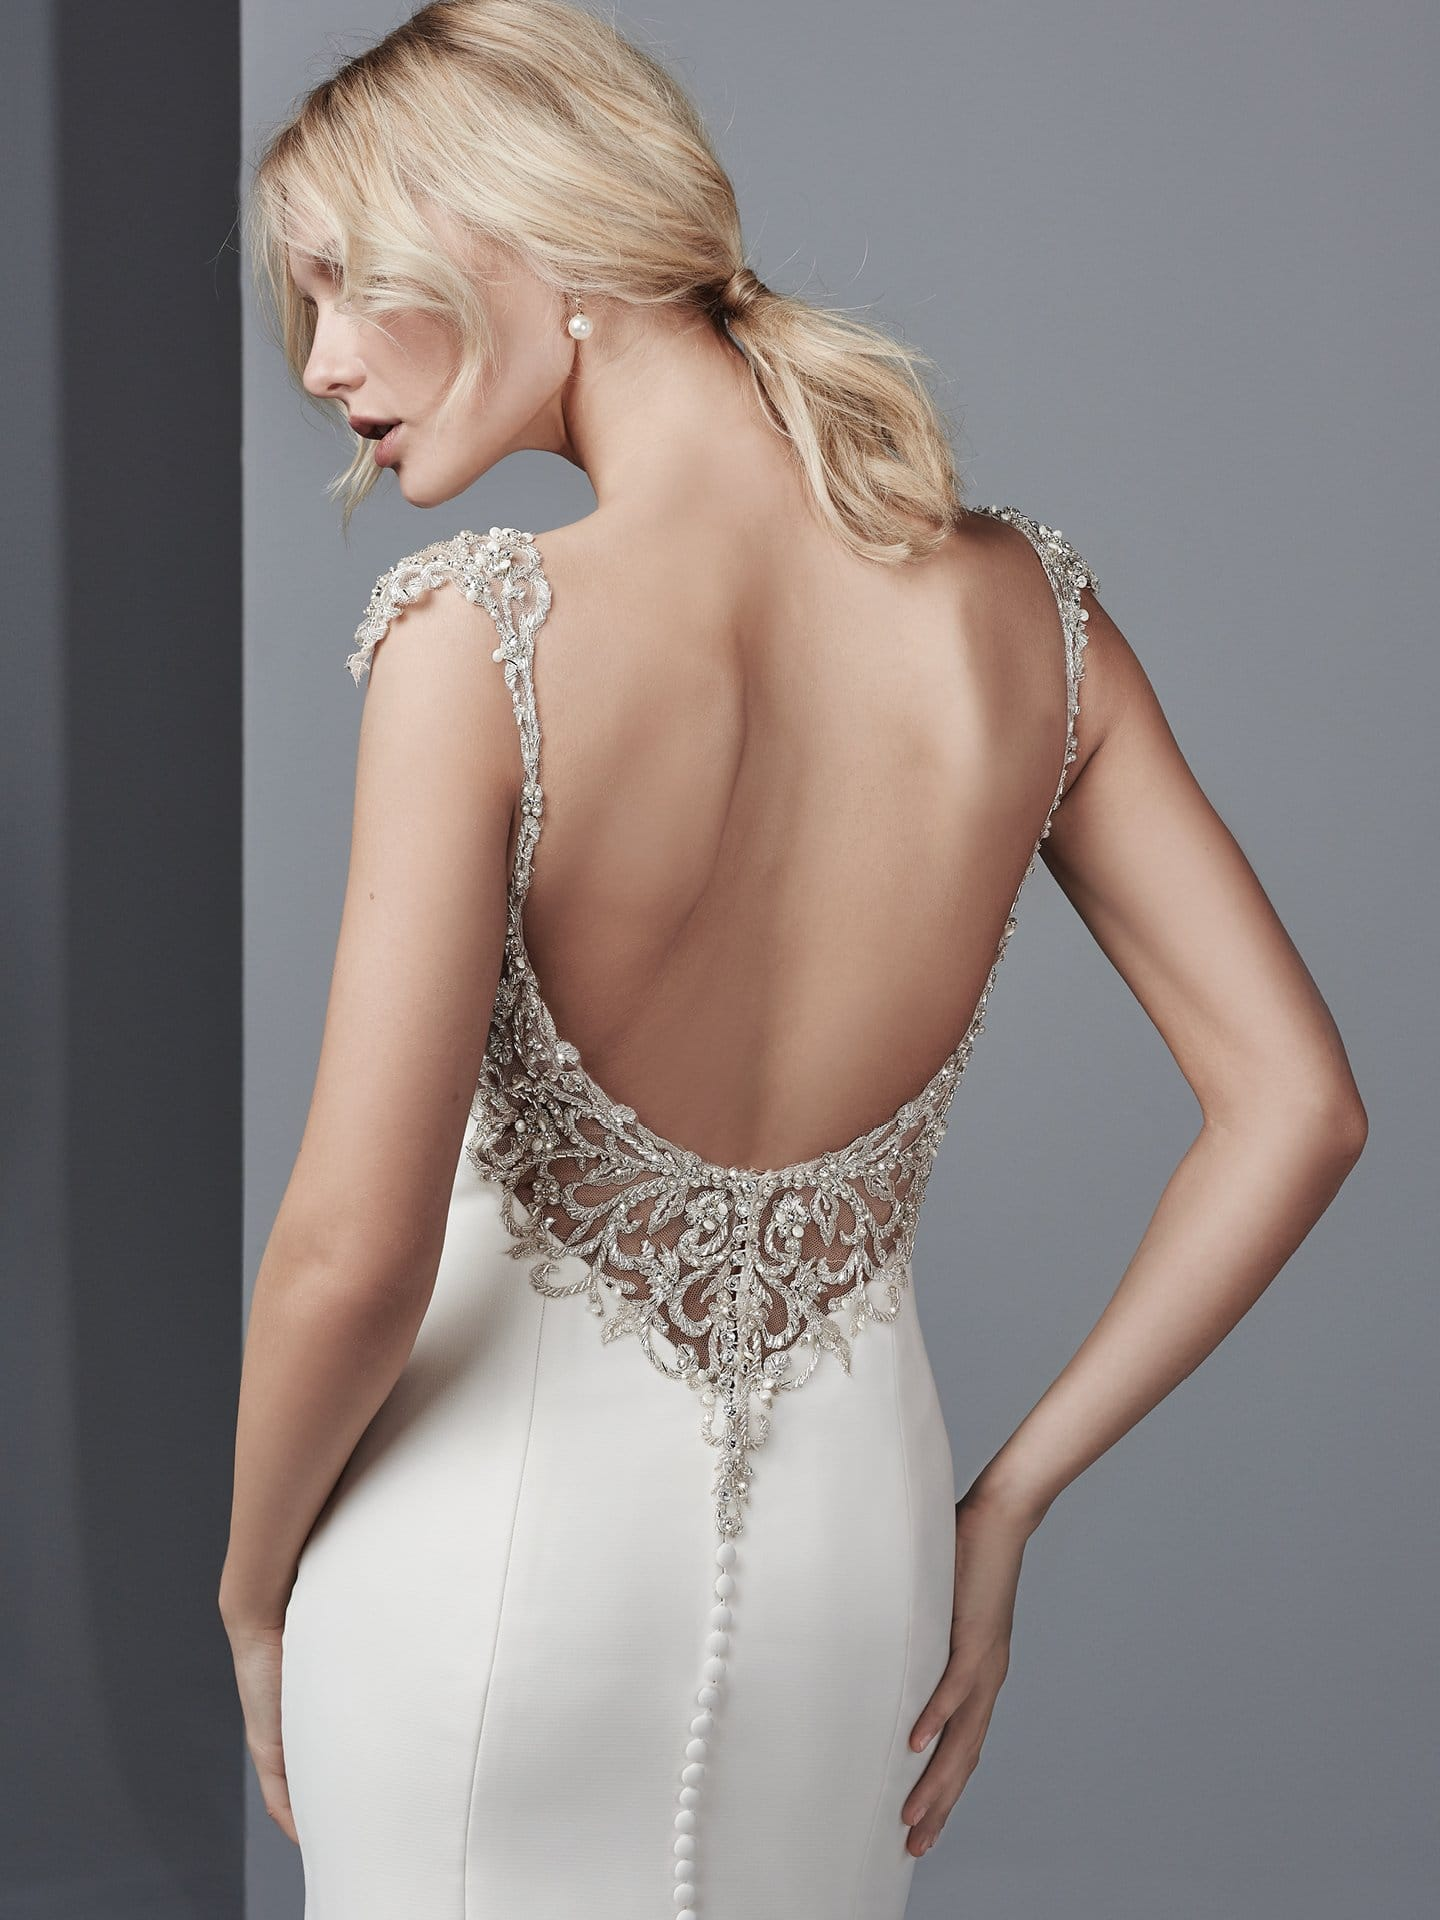 Beautiful statement-back wedding dresses from Maggie Sottero and Sottero and Midgley - Alluring yet sophisticated, this Shavon Organza wedding dress features a bateau neckline, with beaded lace motifs and Swarovski crystals accenting the illusion cap-sleeves and illusion open back. Raquelle by Sottero and Midgley.